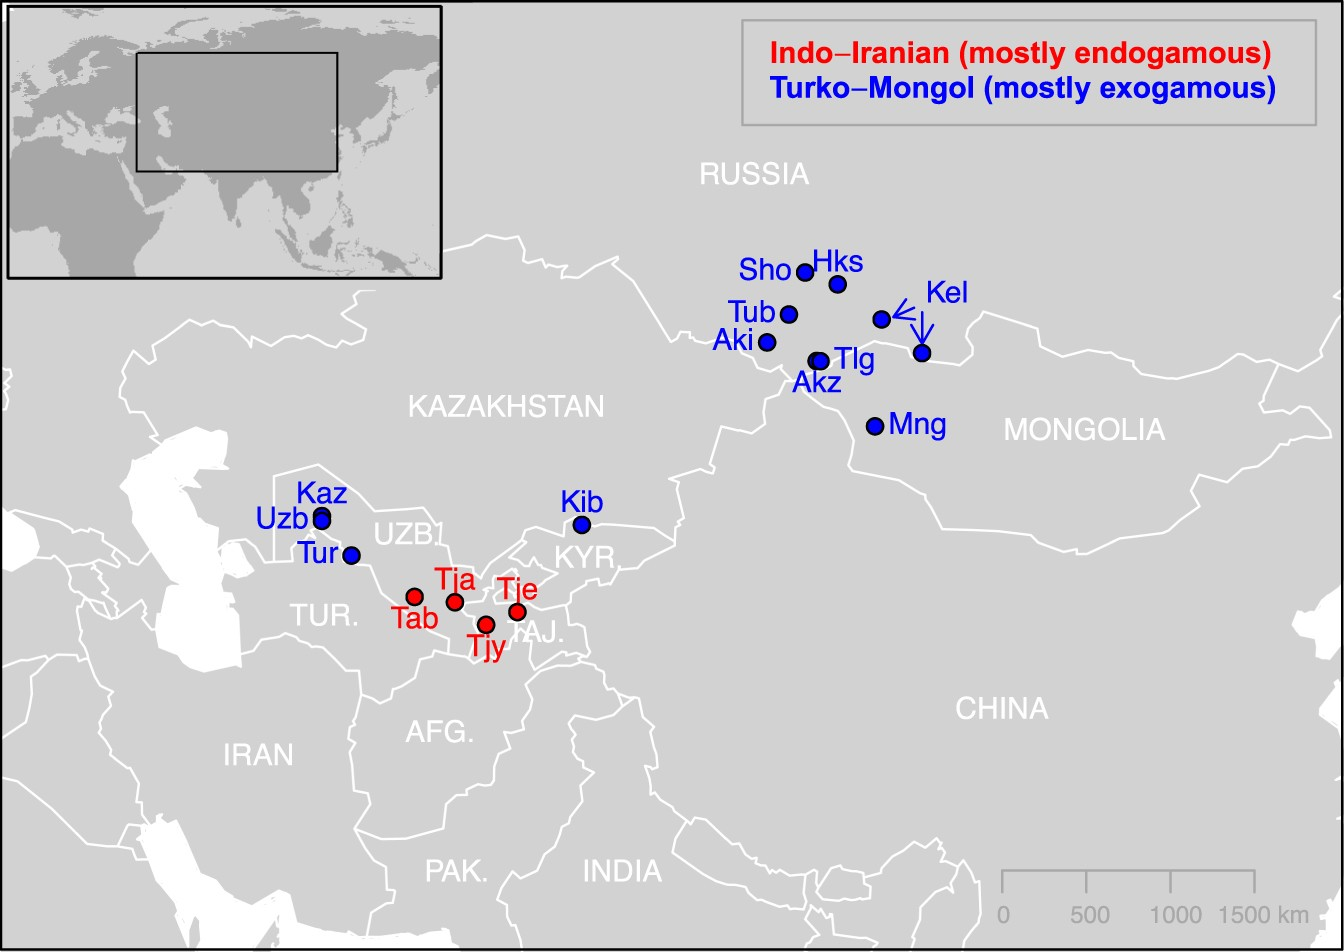 Close inbreeding and low genetic diversity in Inner Asian